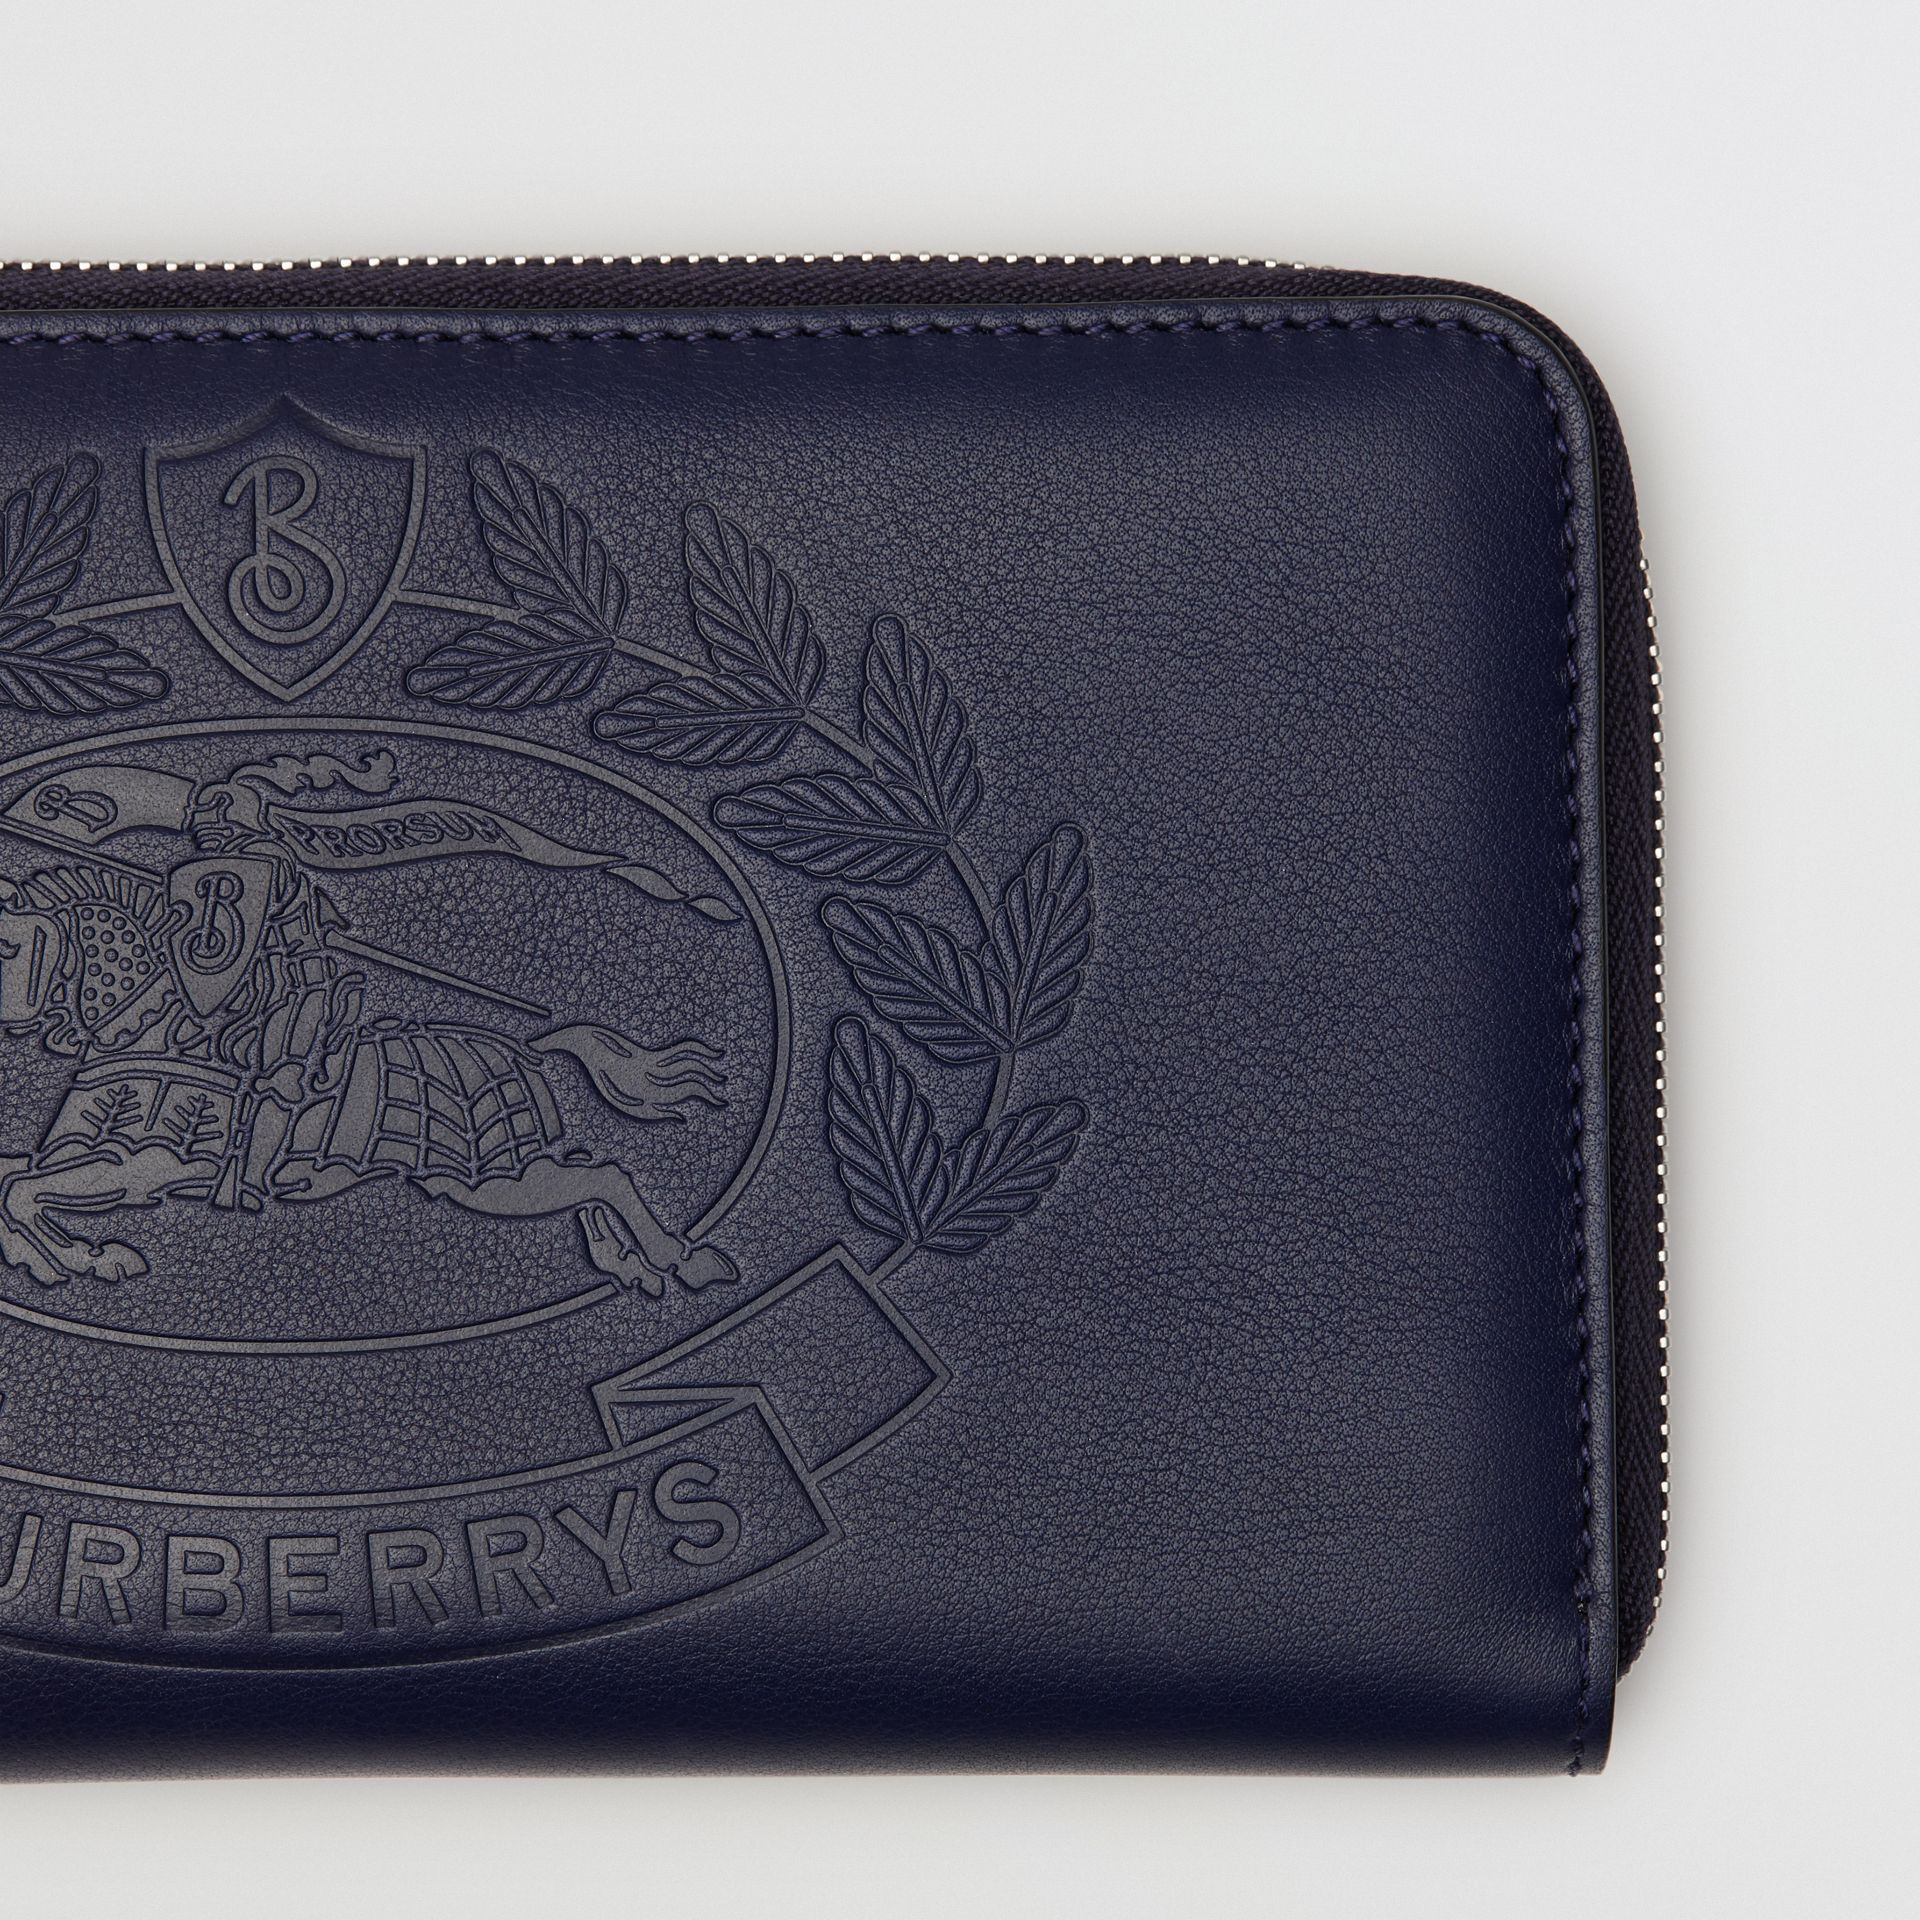 Embossed Crest Leather Ziparound Wallet in Regency Blue - Men | Burberry - gallery image 1